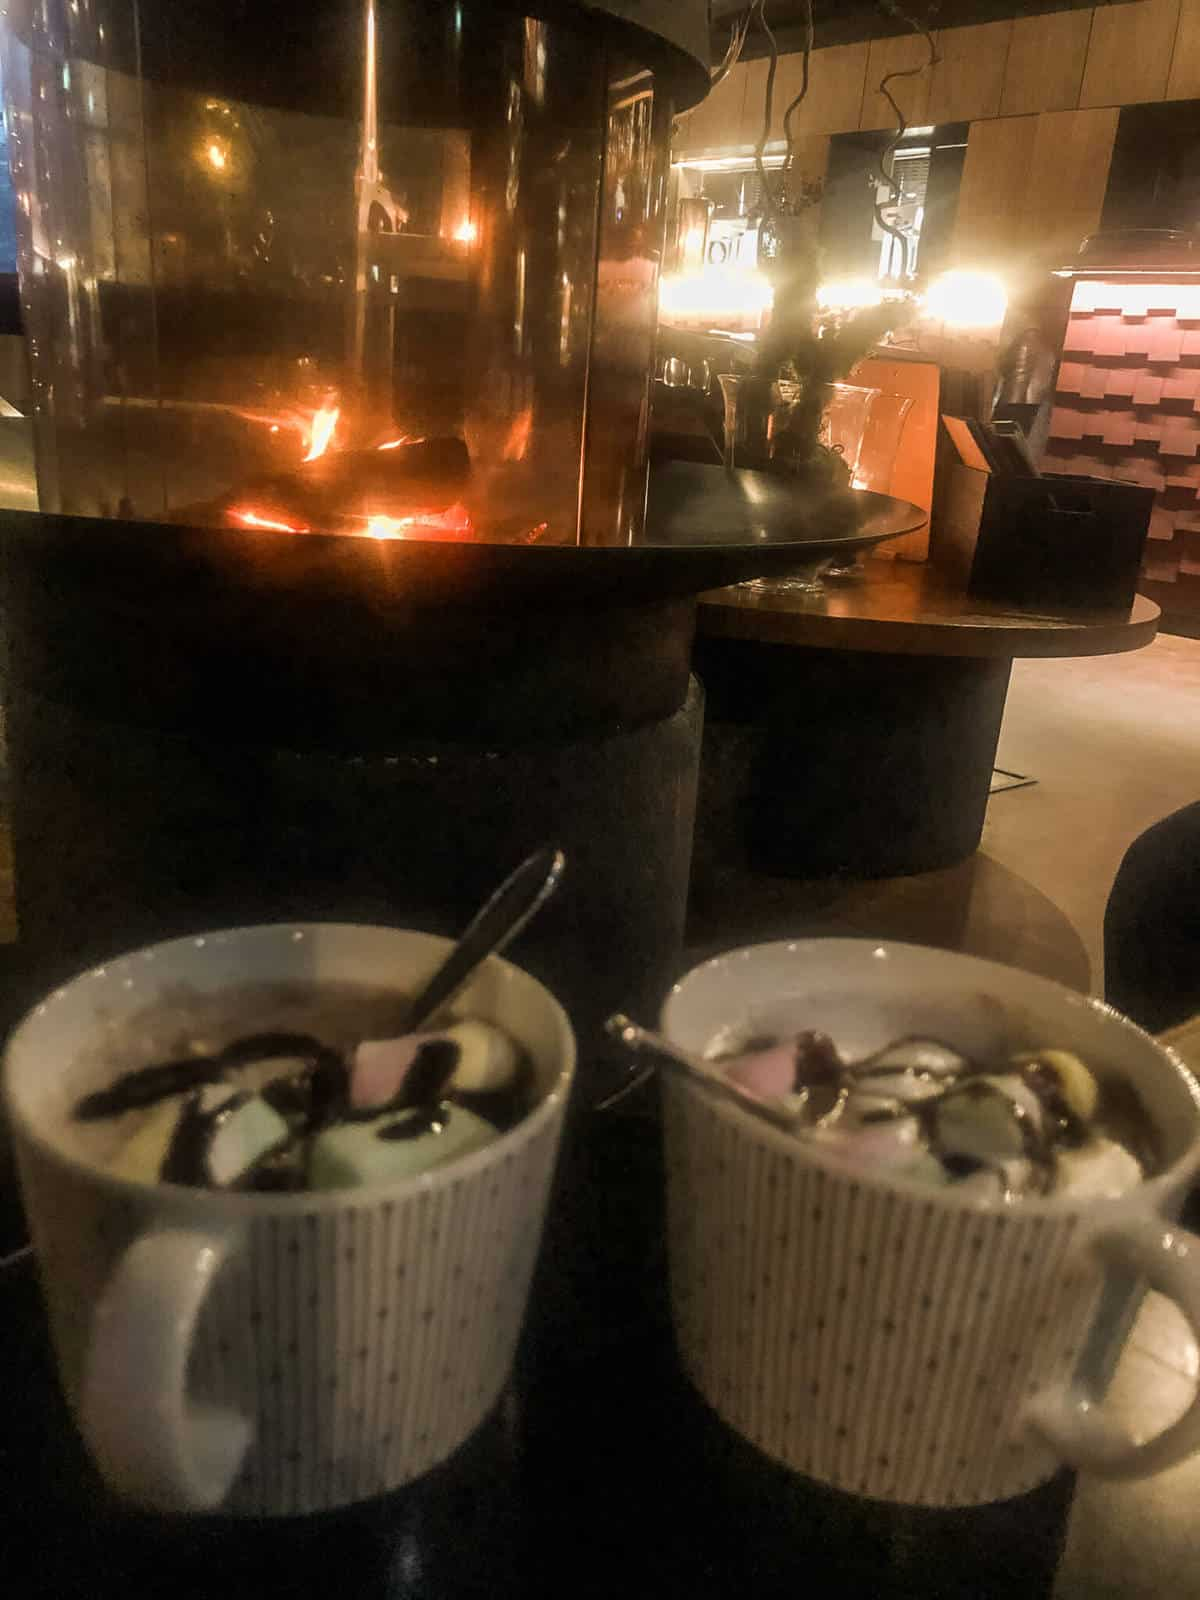 Two mugs of hot chocolate and marshmallows in front of a fire